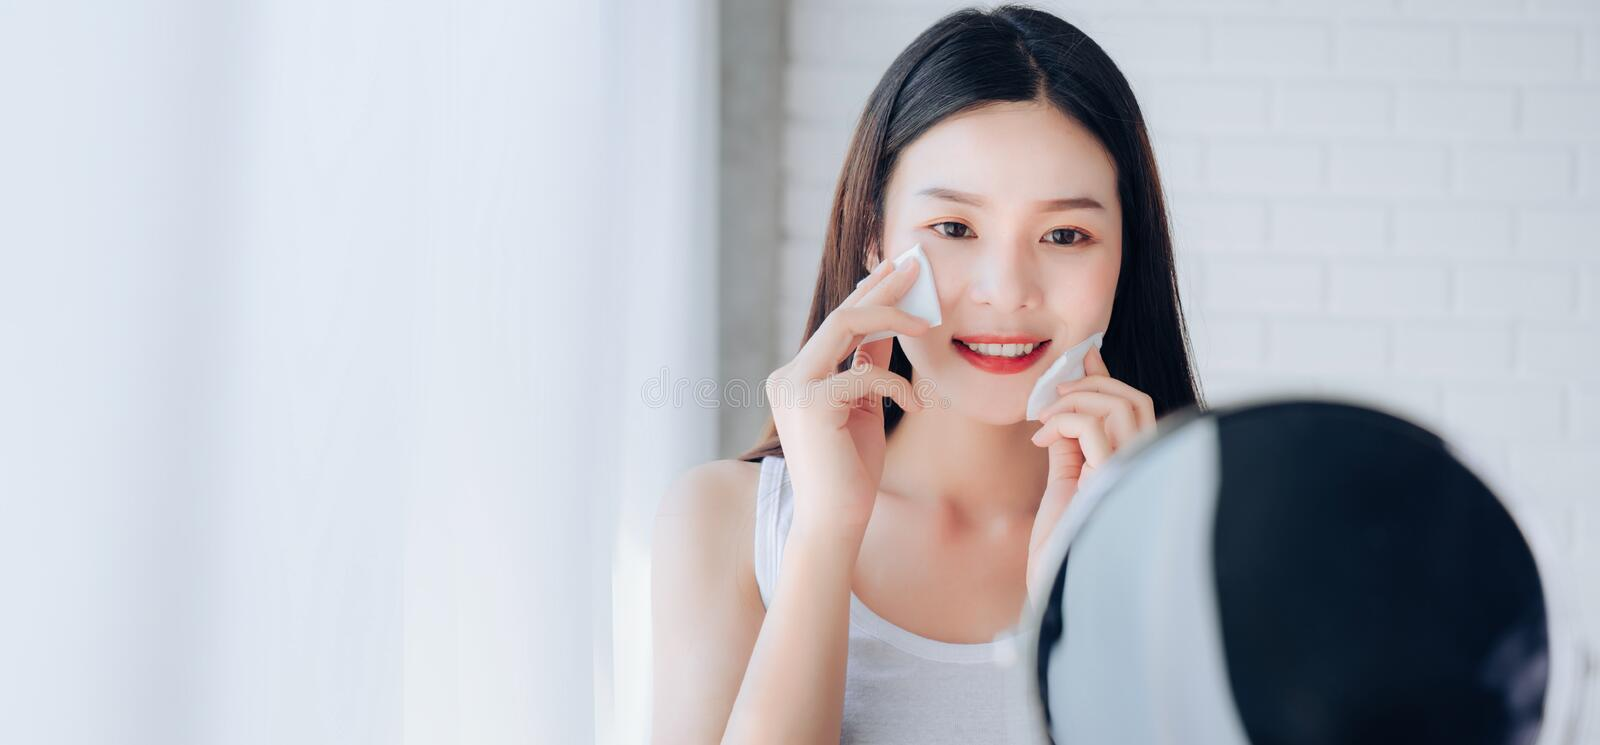 Young Beauty Asian Woman Cleaning Face with Cotton Her Looking at Mirror stock photo